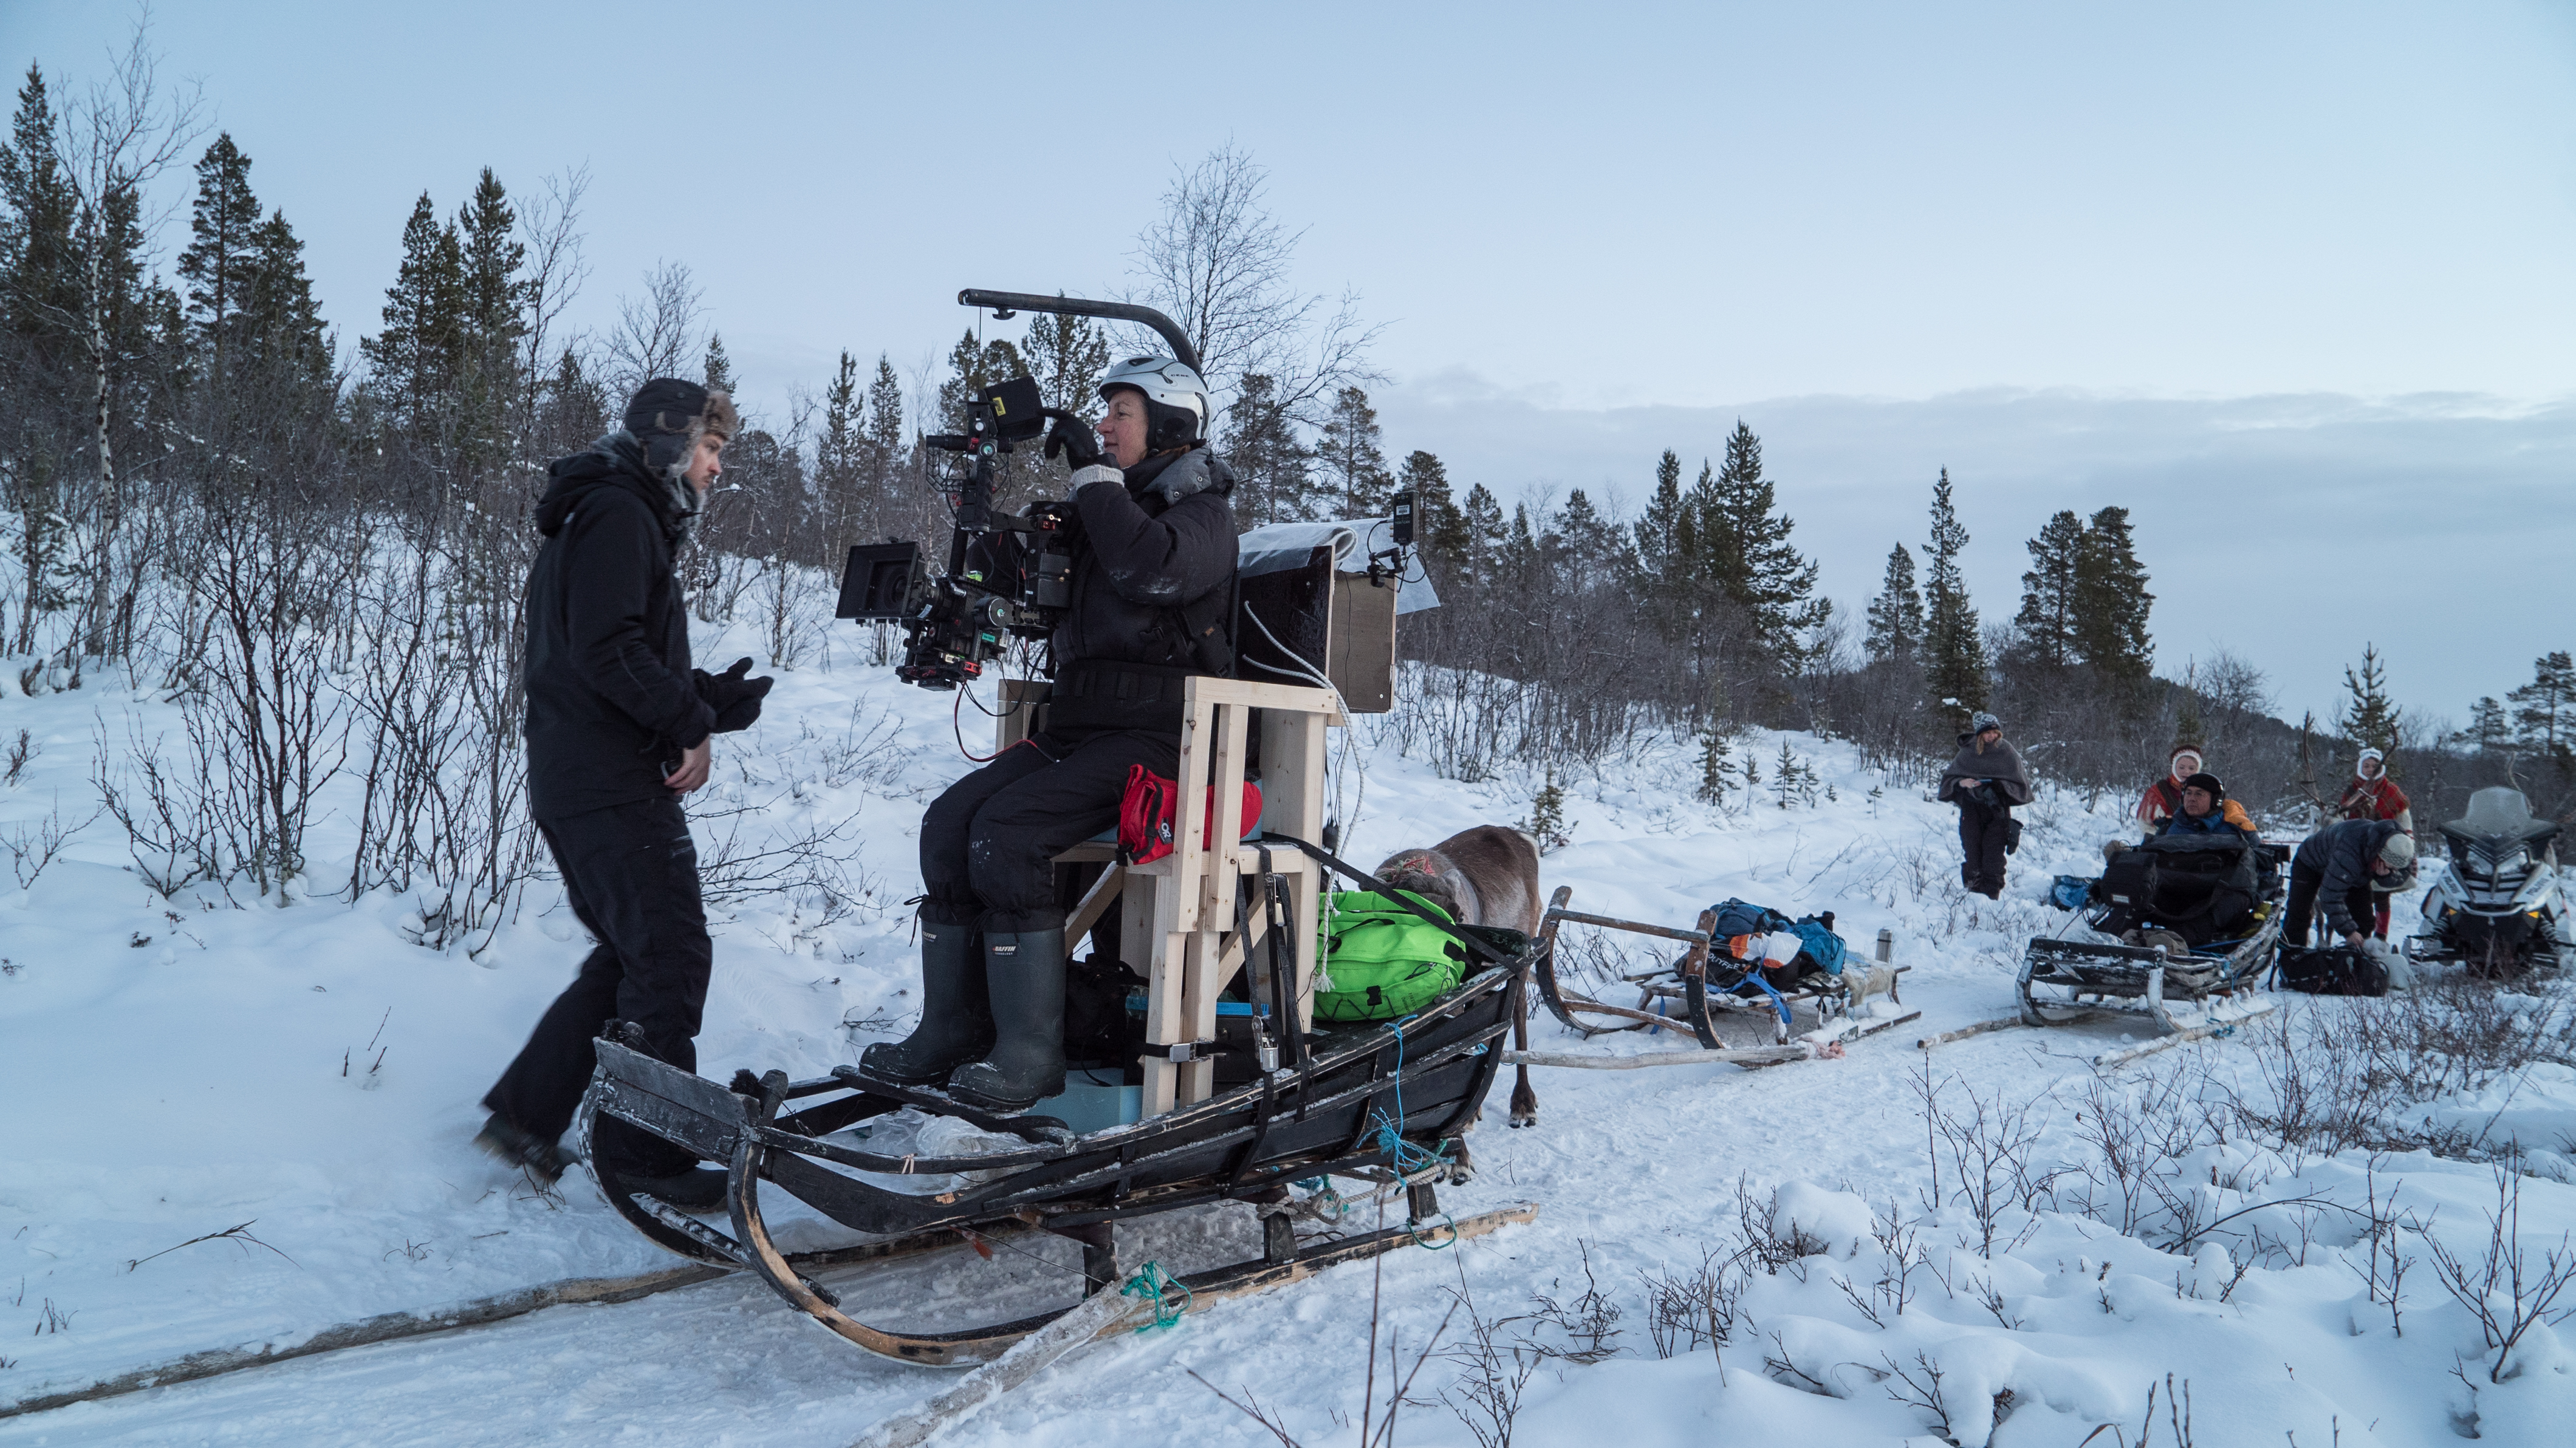 filming-all-aboard-the-sleigh-ride